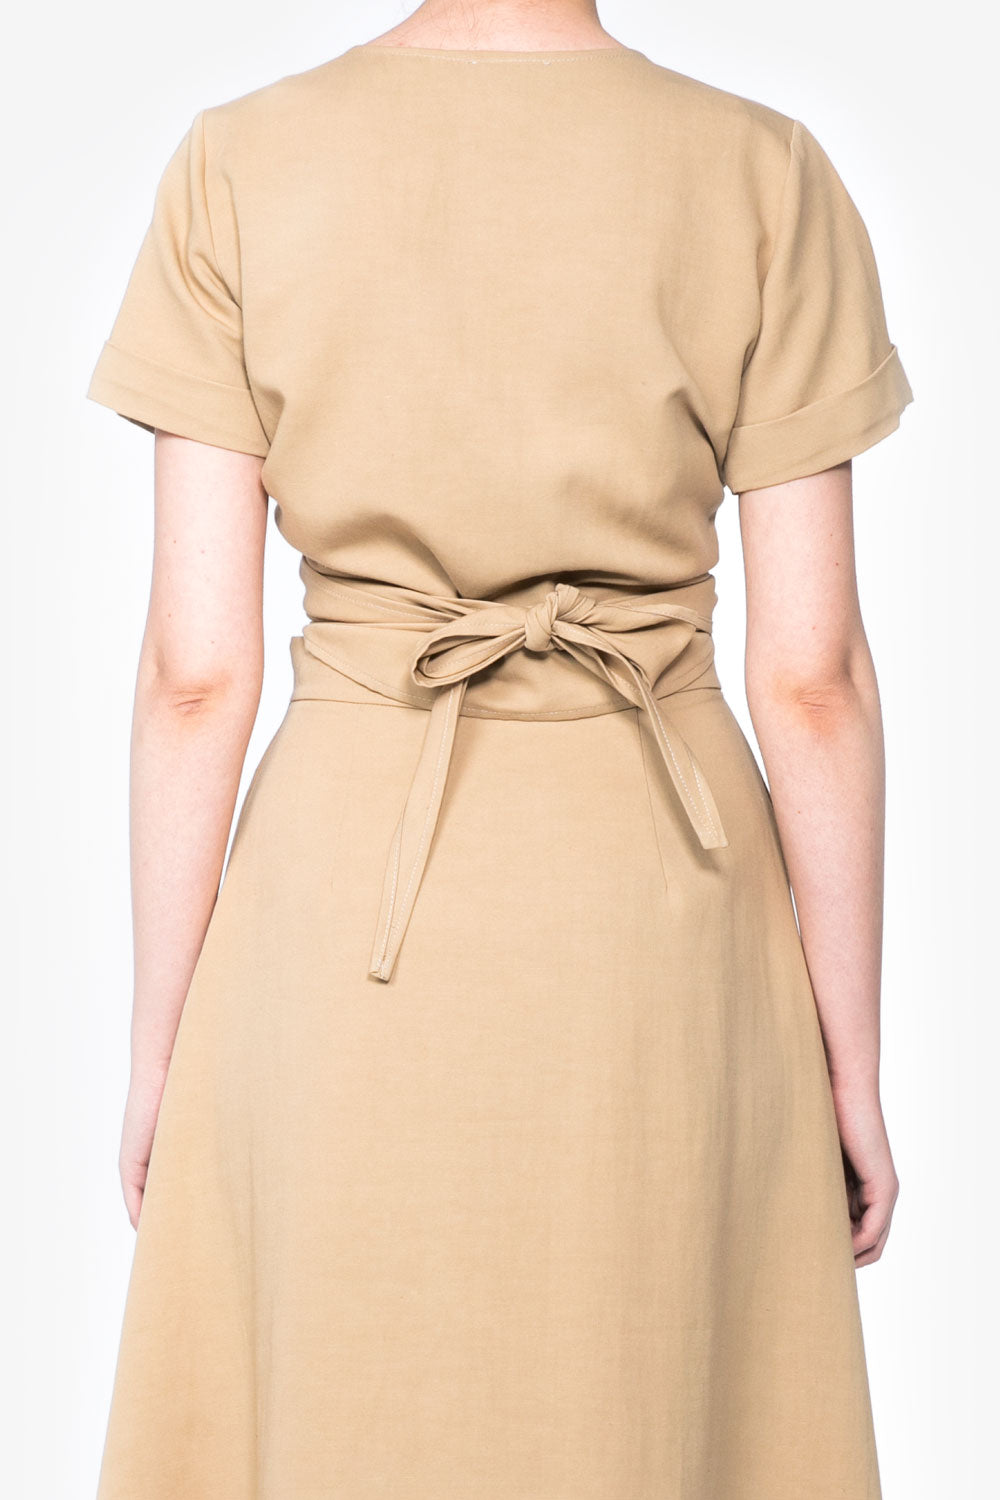 Gilda Wrap Shirt in Sand